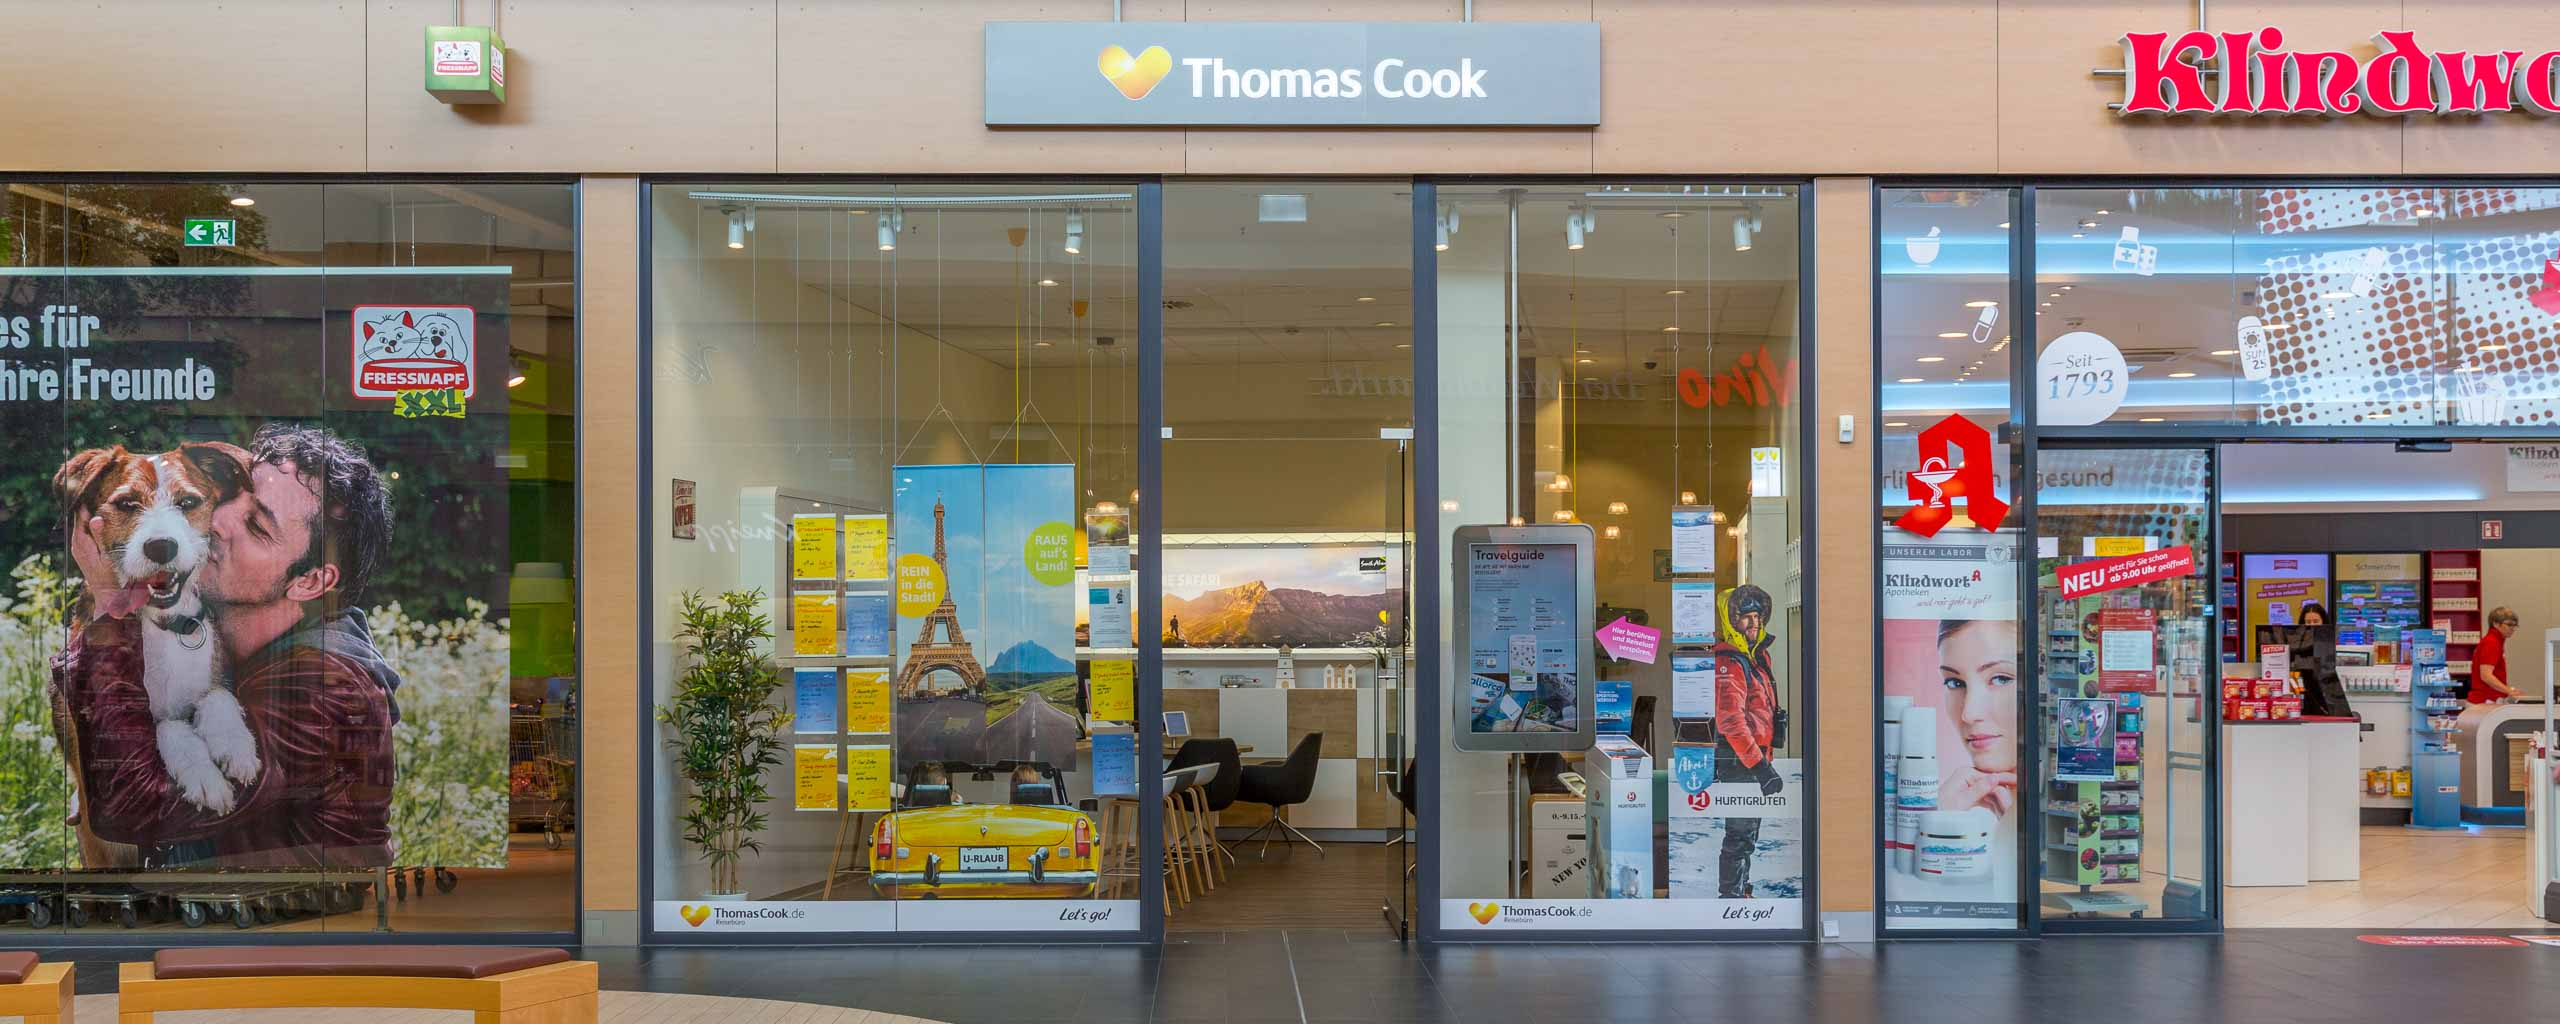 Thomas Cook im LUV SHOPPING in Lübeck